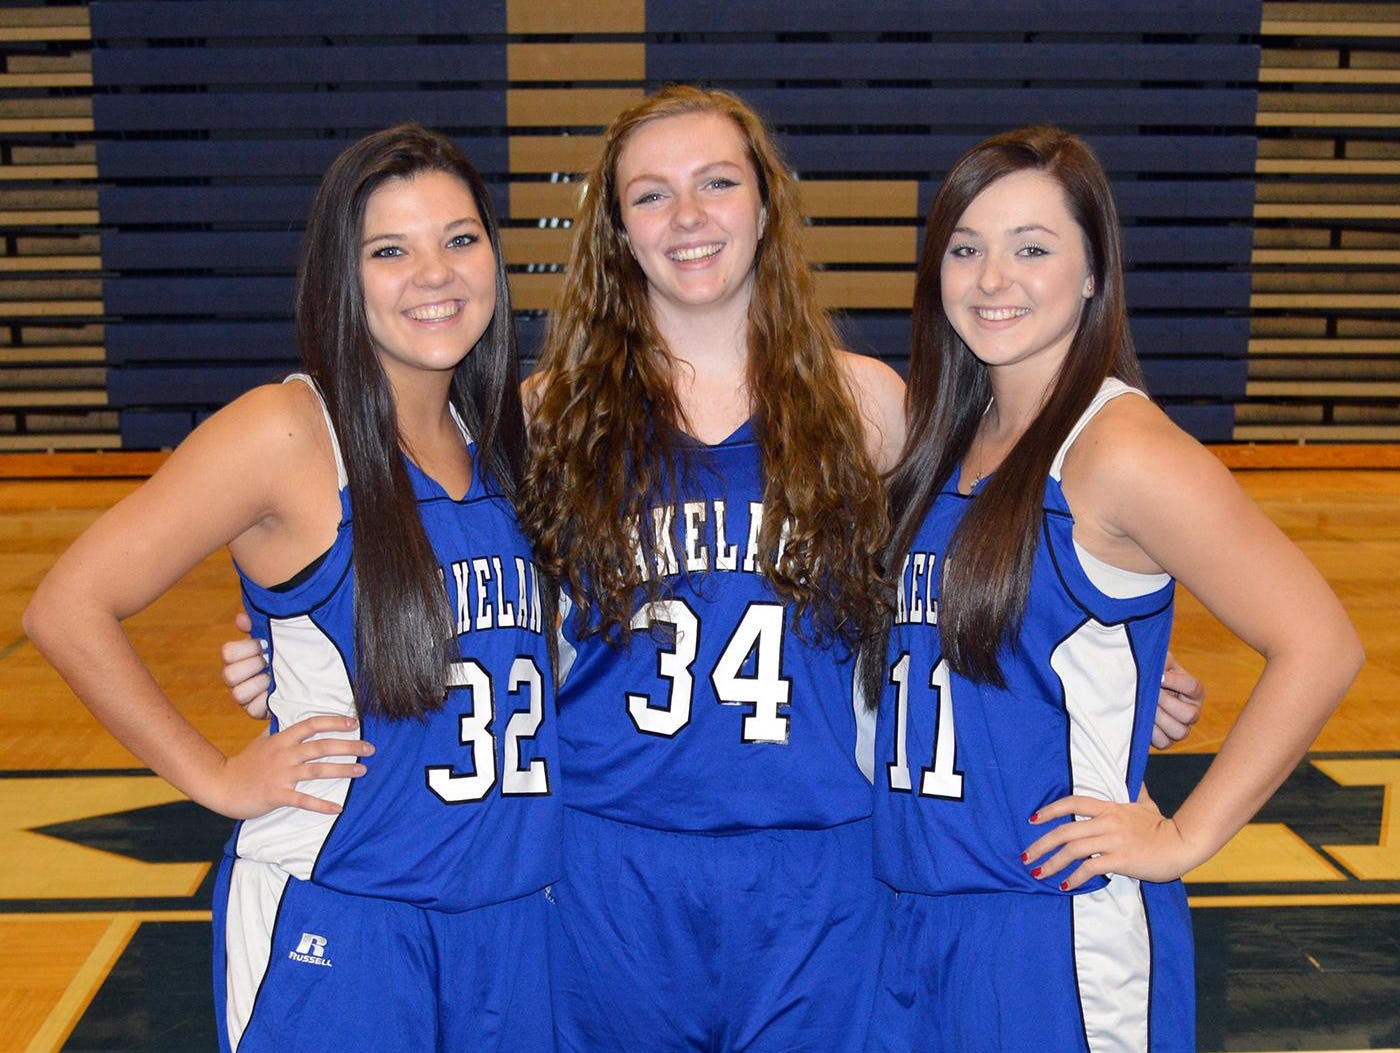 Lakeland's senior basketball class includes (from left) Molly Stec, Reina Troxell and Emilie Krom.